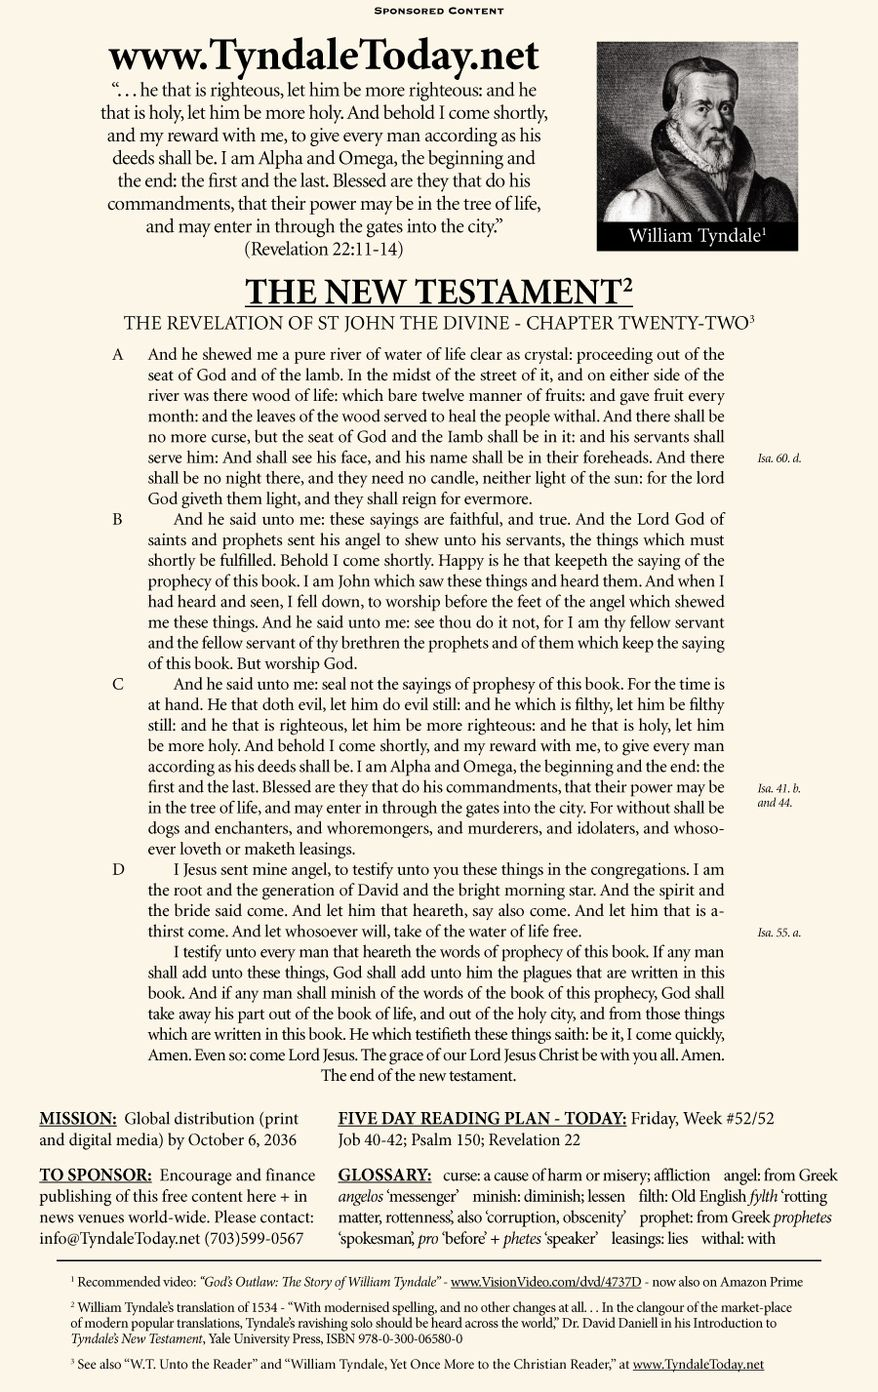 A daily reading of William Tyndale's 1534 translation of The New Testament from Tyndale Today. (Sponsored content December 29, 2017 in The Washington Times)